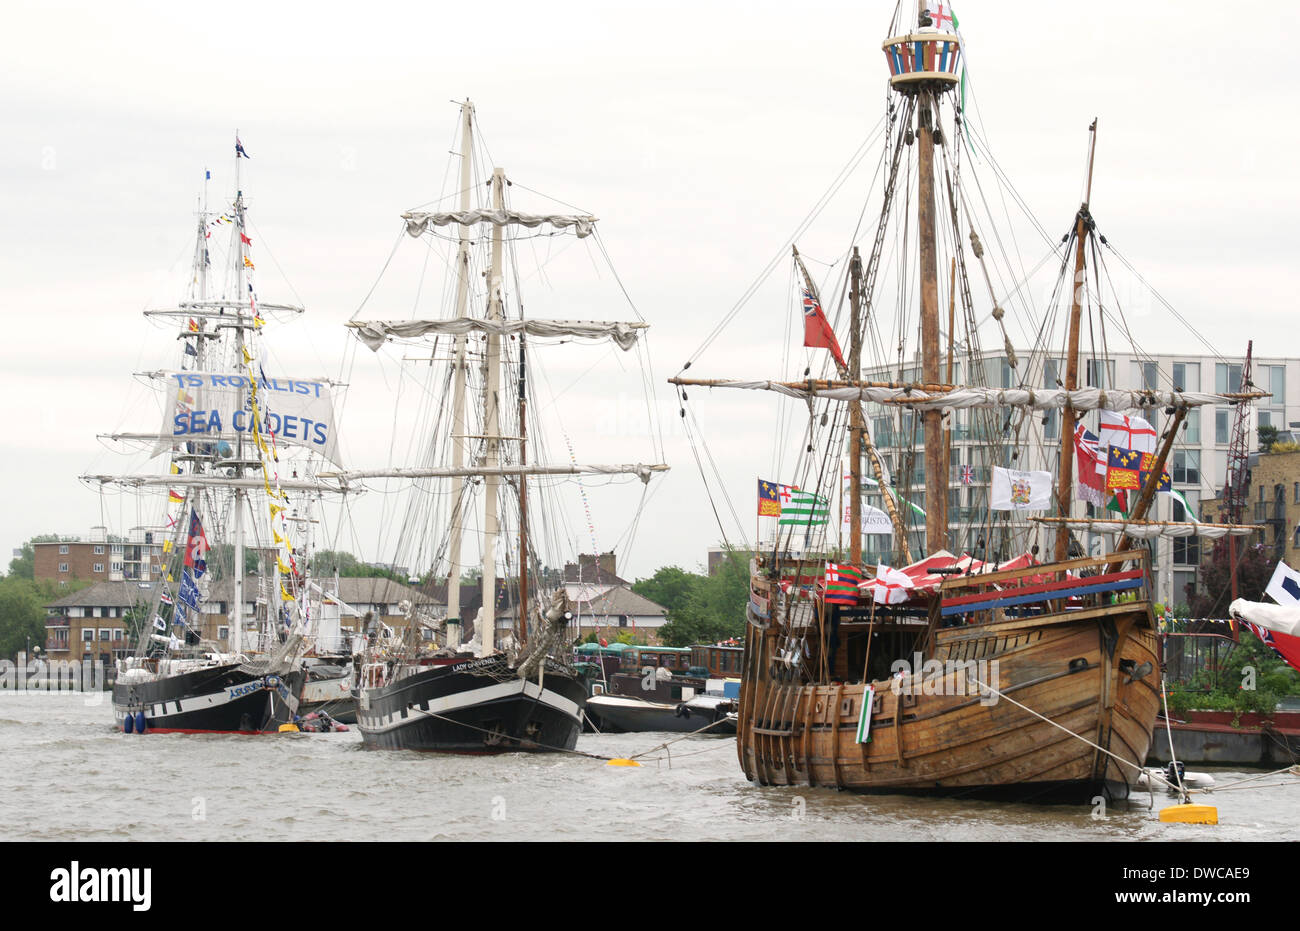 1996 replica of MATTHEW that sailed 500 years ago to the coast of Newfoundland in the Parade of Sail on the Thames Stock Photo